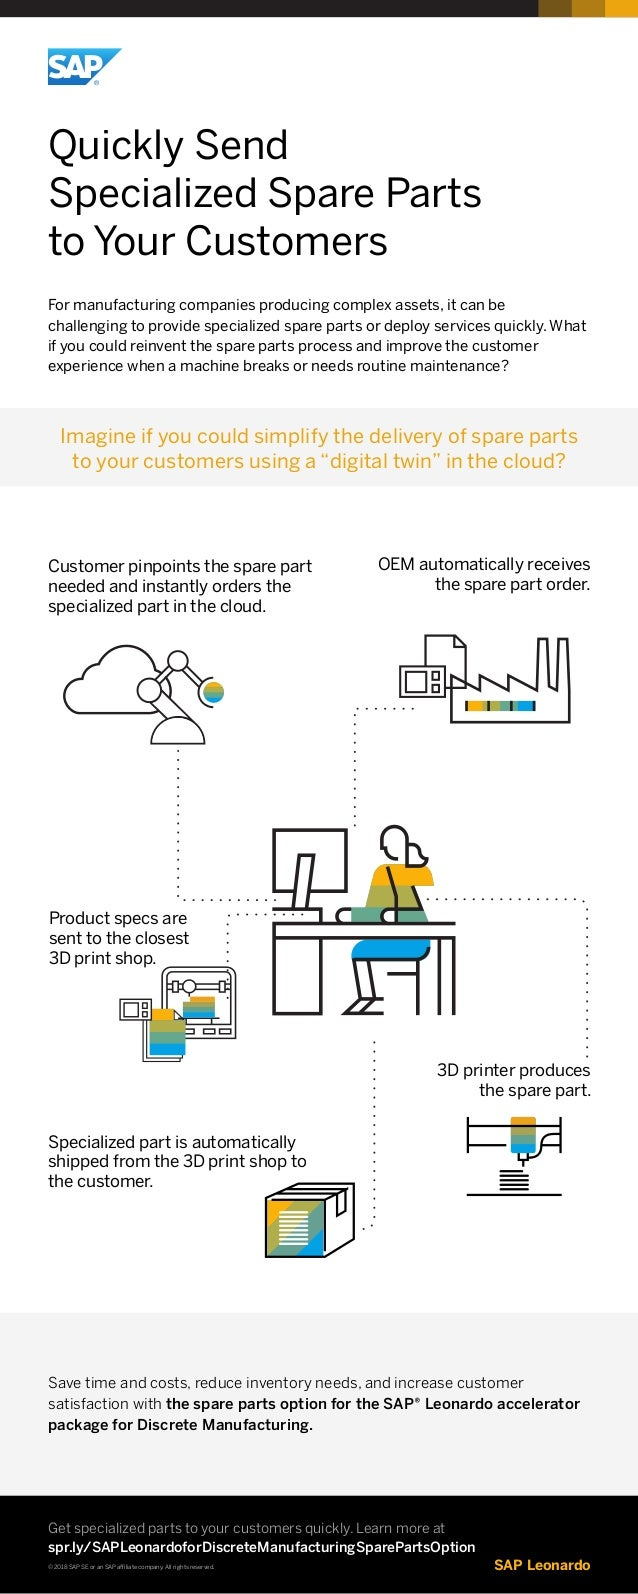 Sap Leonardo For Discrete Manufacturing Spare Parts 1 Block Diagram Quickly Send Specialized To Your Customers Companies Producing Complex Assets It